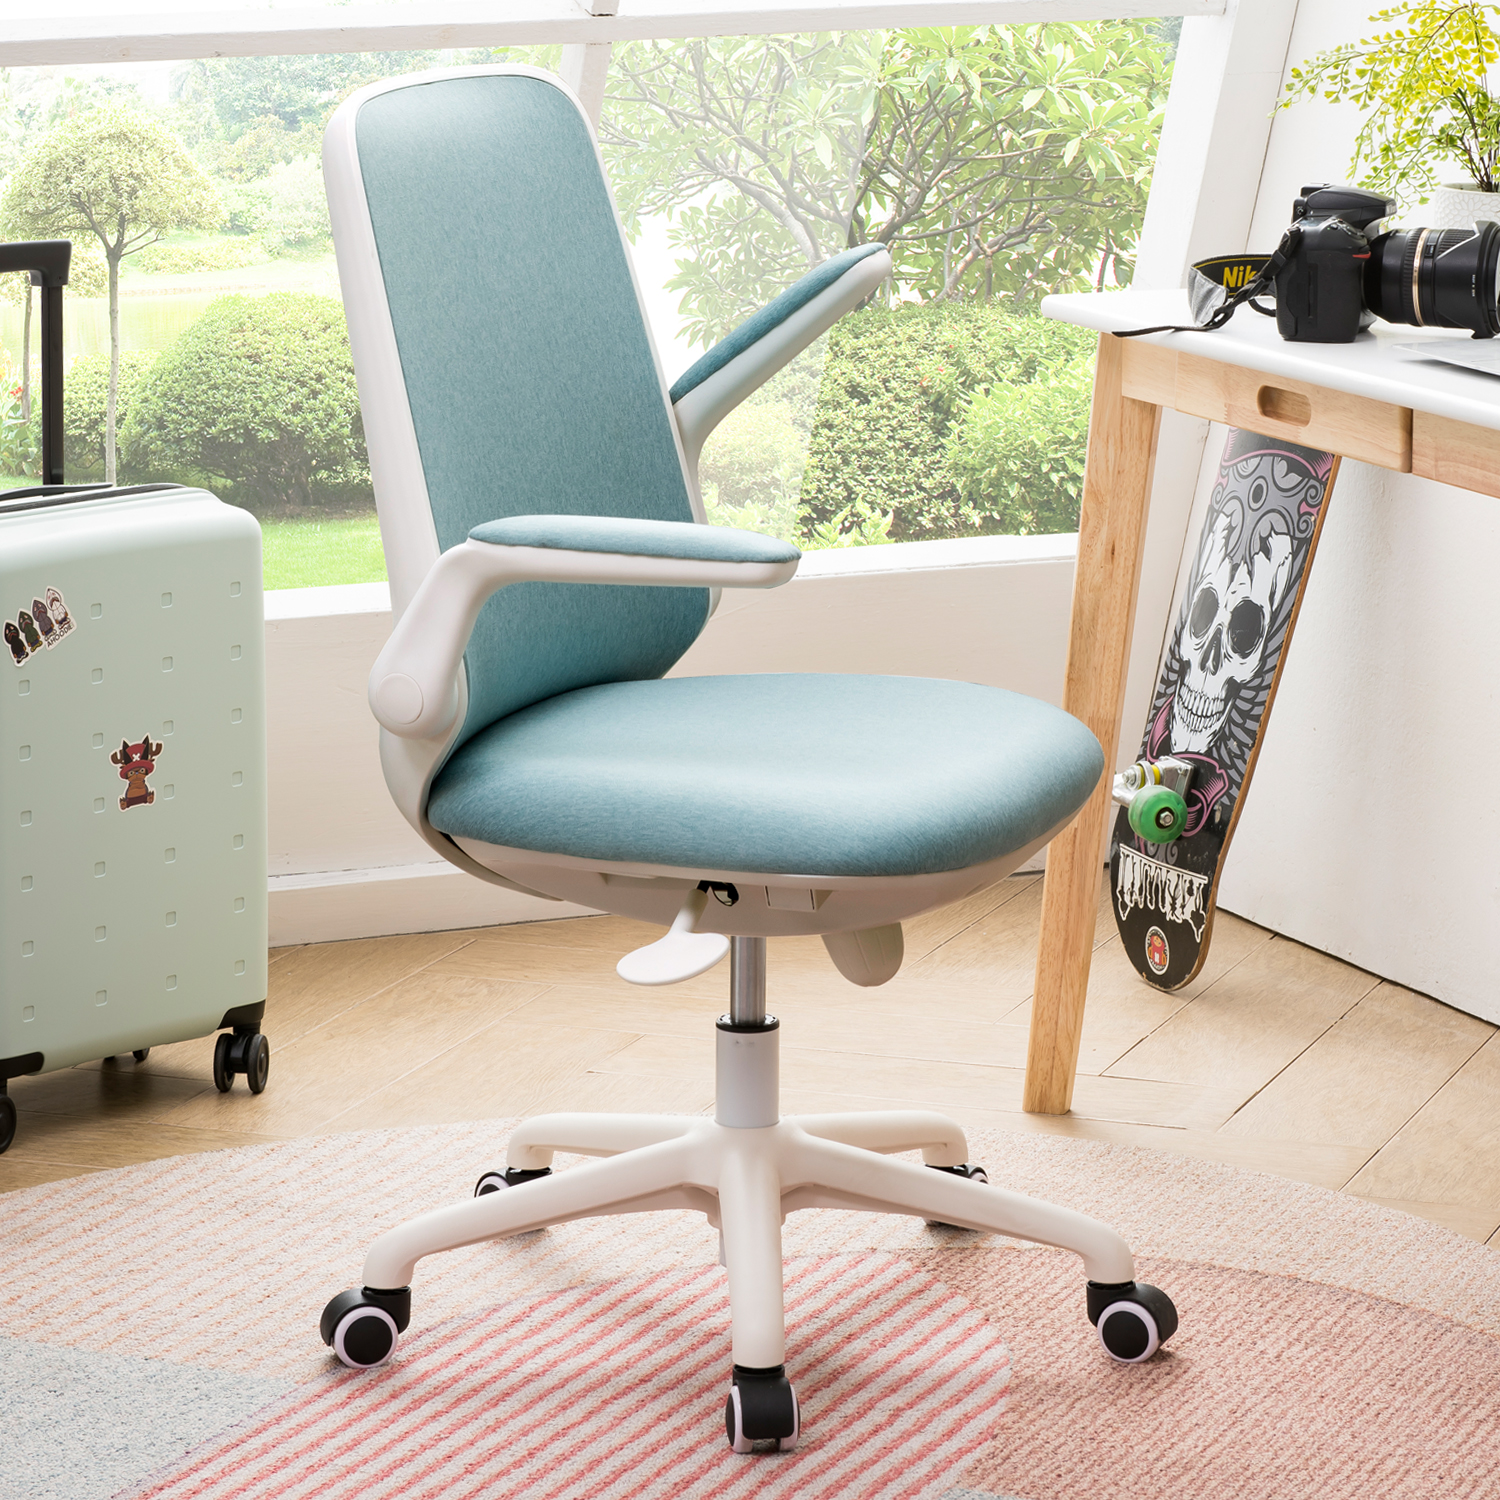 Ovios Office Chair Water Resistant Fabric Desk Chair For Dresser And Home Office Modern Comfortble Nice Tash Chair For Computer Desk White Blue Walmart Com Walmart Com